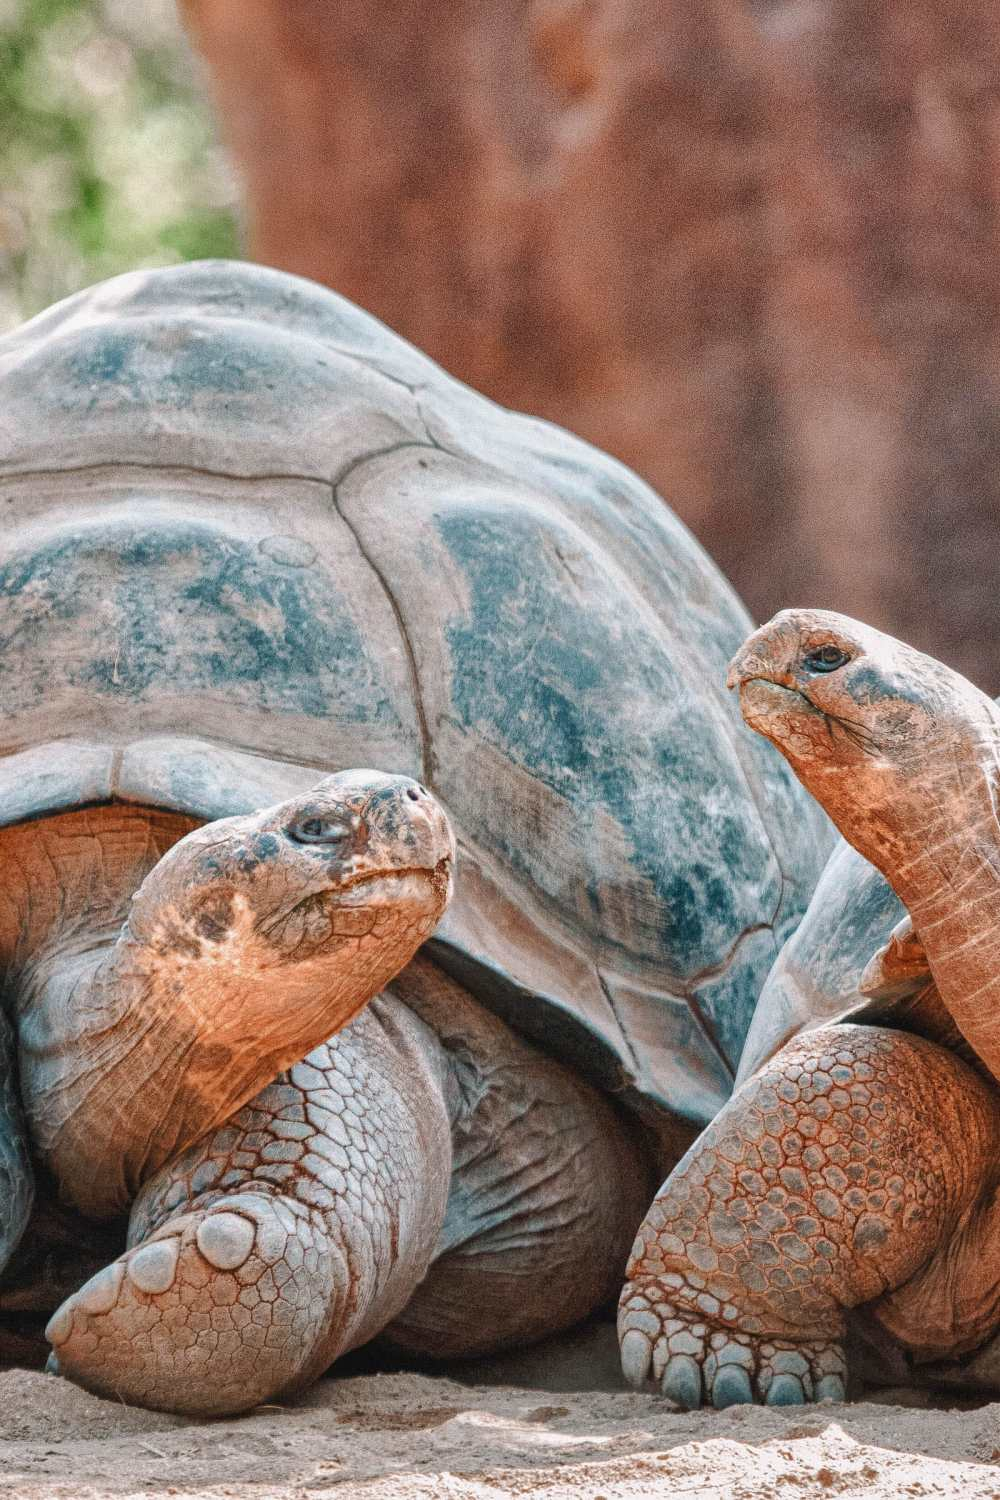 Animals To See In The Galapagos Islands (4)